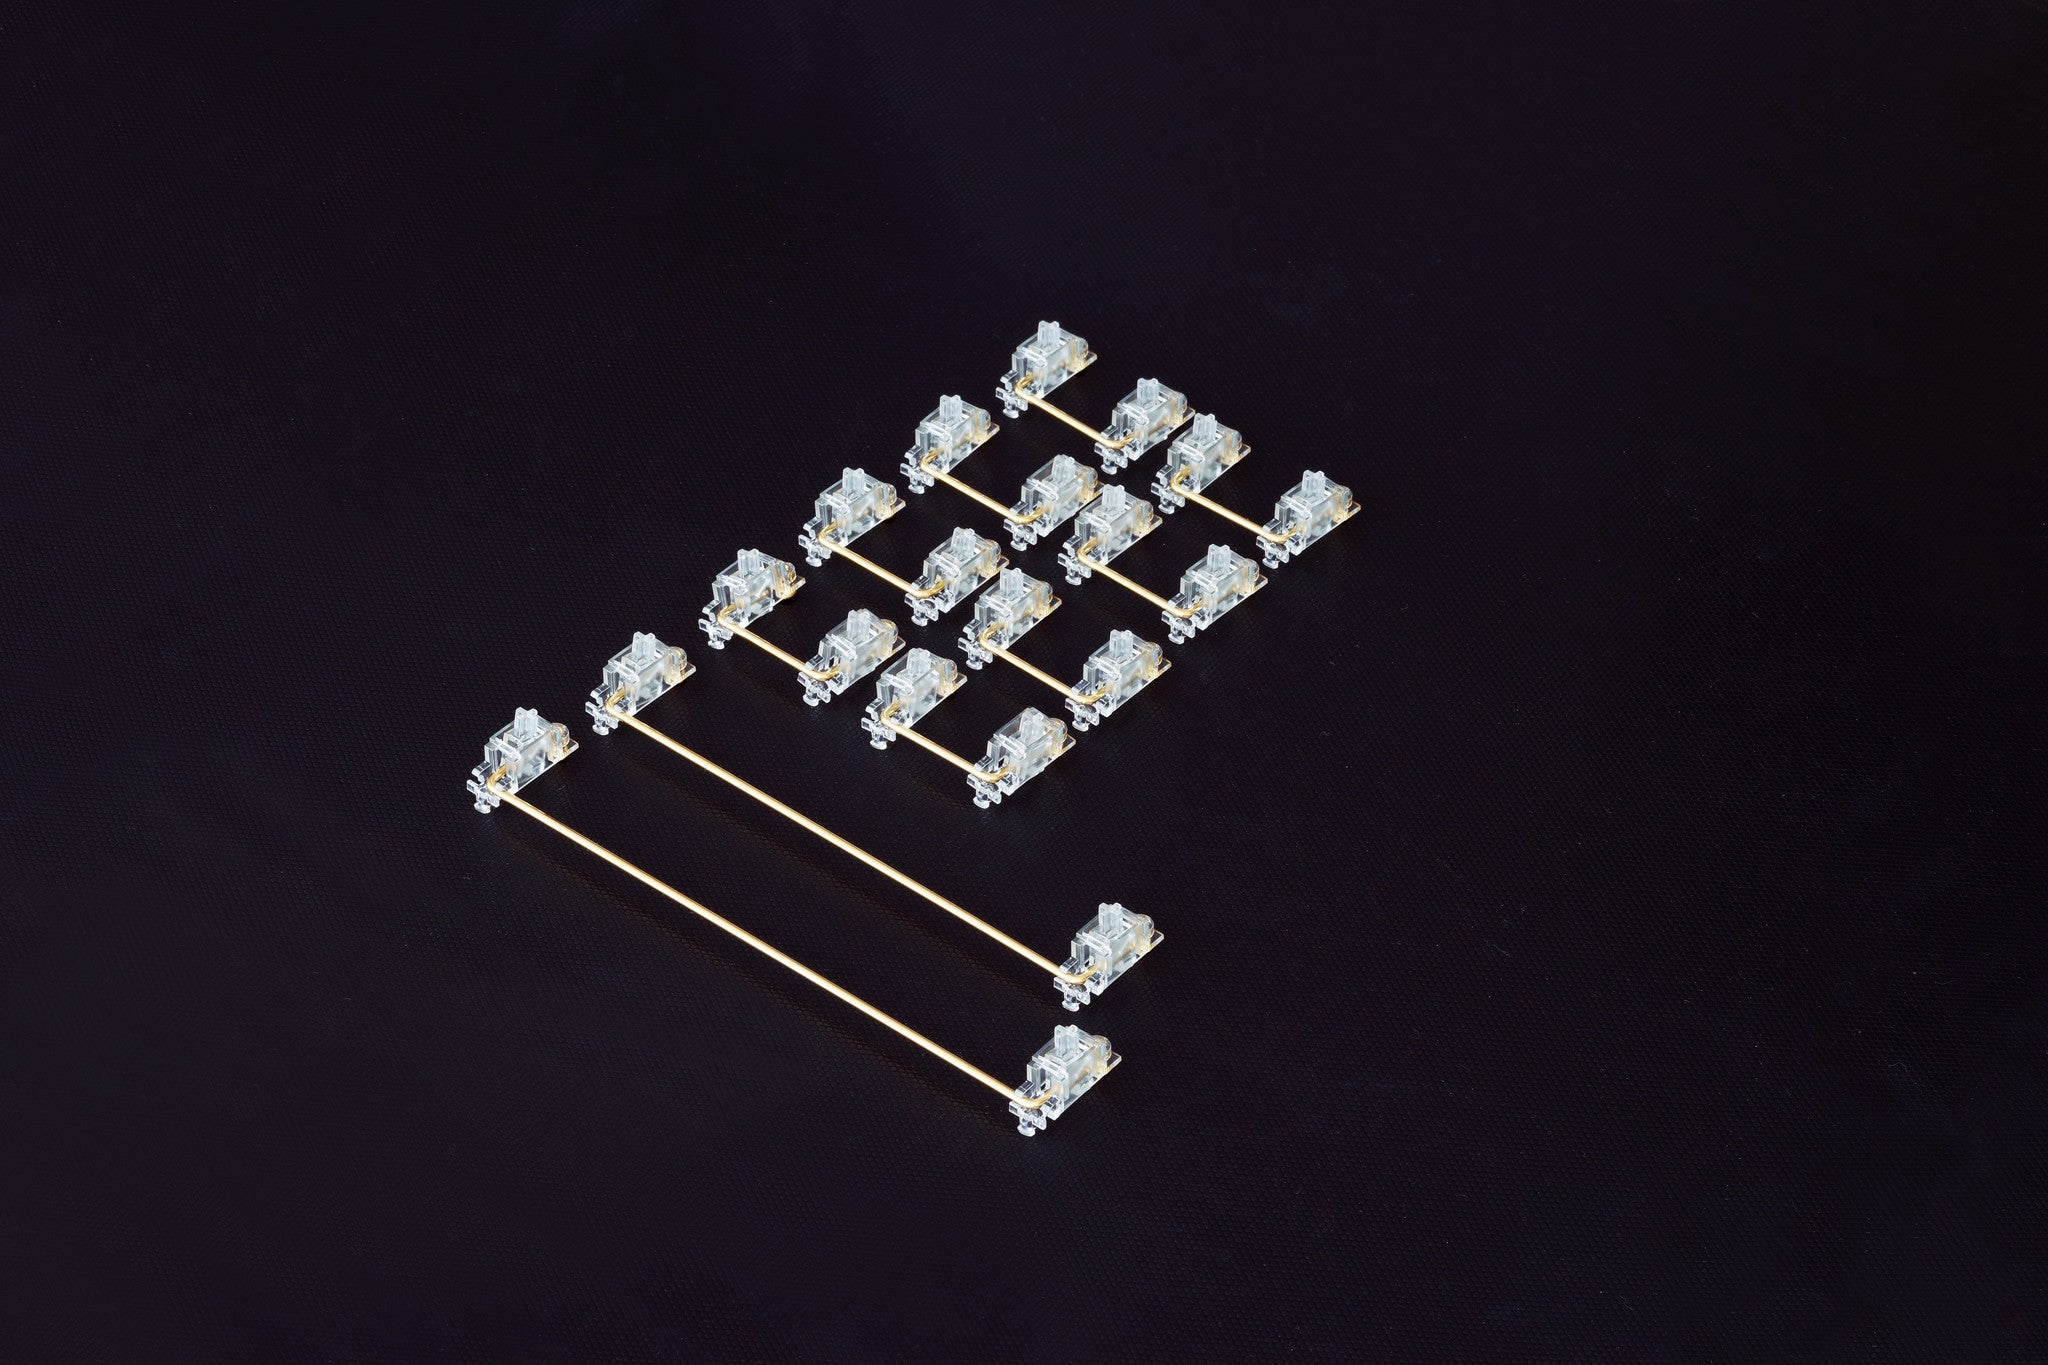 Transparent Gold Plated PCB Mount Screw-in Stabilizers V2